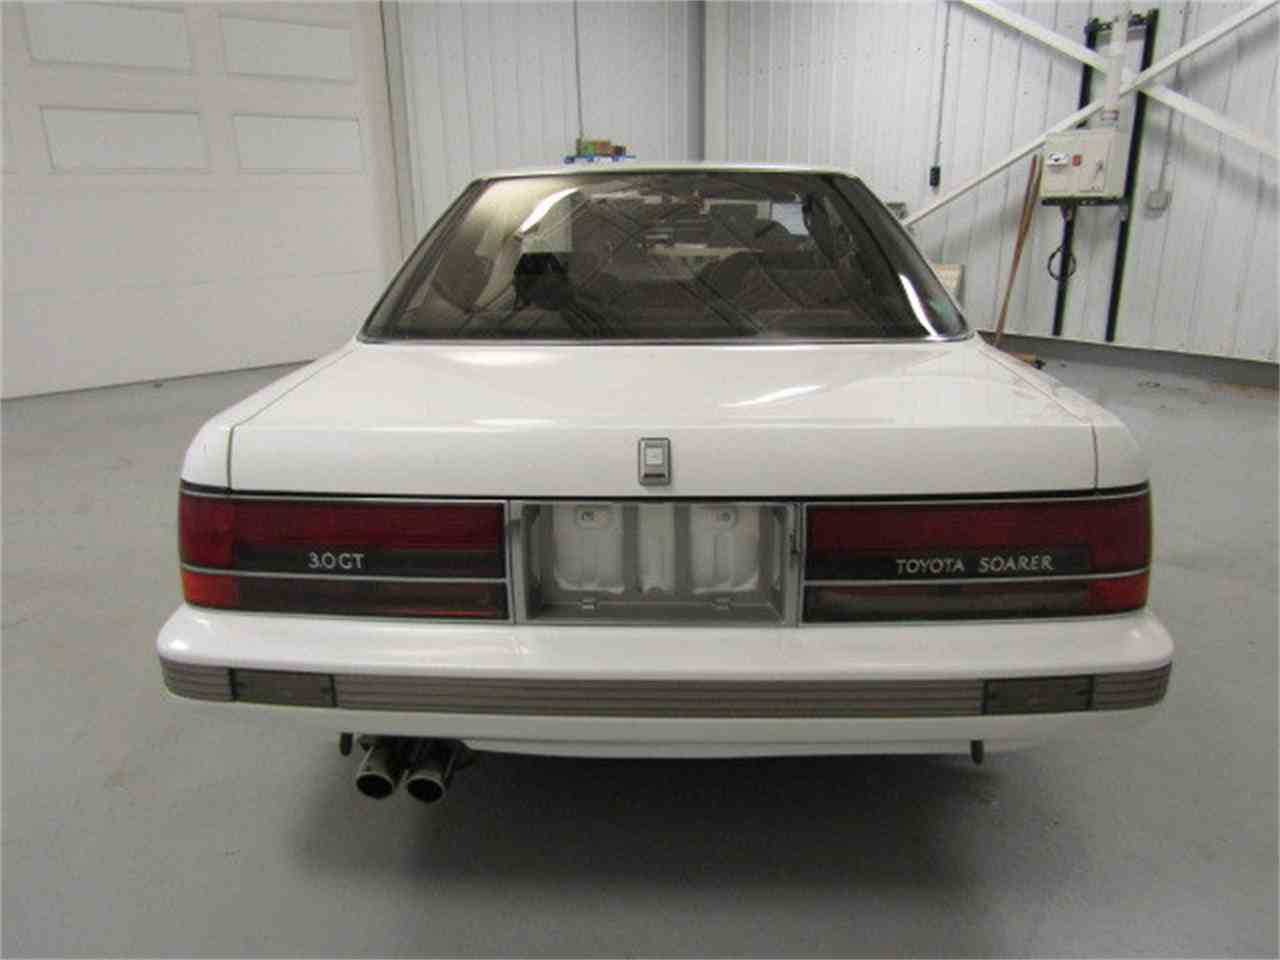 Large Picture of '87 Toyota Soarer located in Christiansburg Virginia - $7,999.00 Offered by Duncan Imports & Classic Cars - JLB2